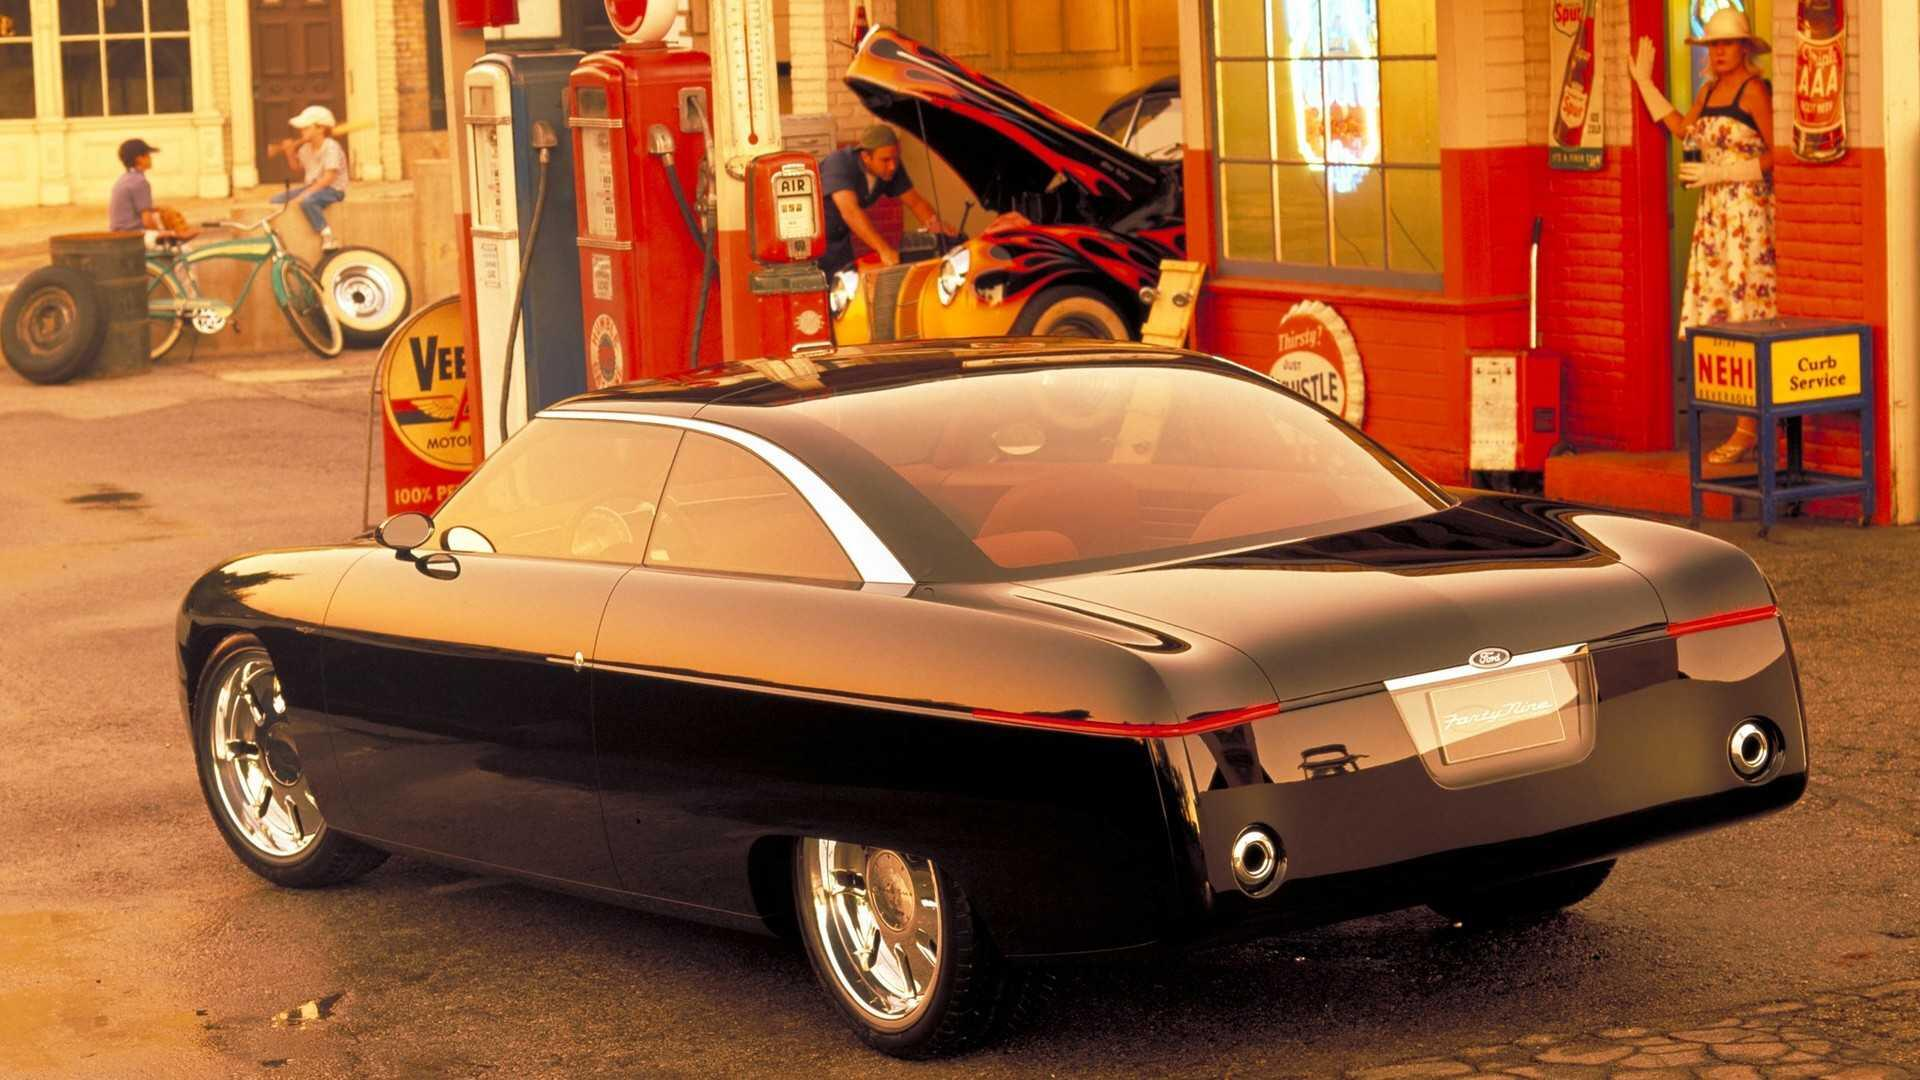 2001 Ford Forty-Nine concept